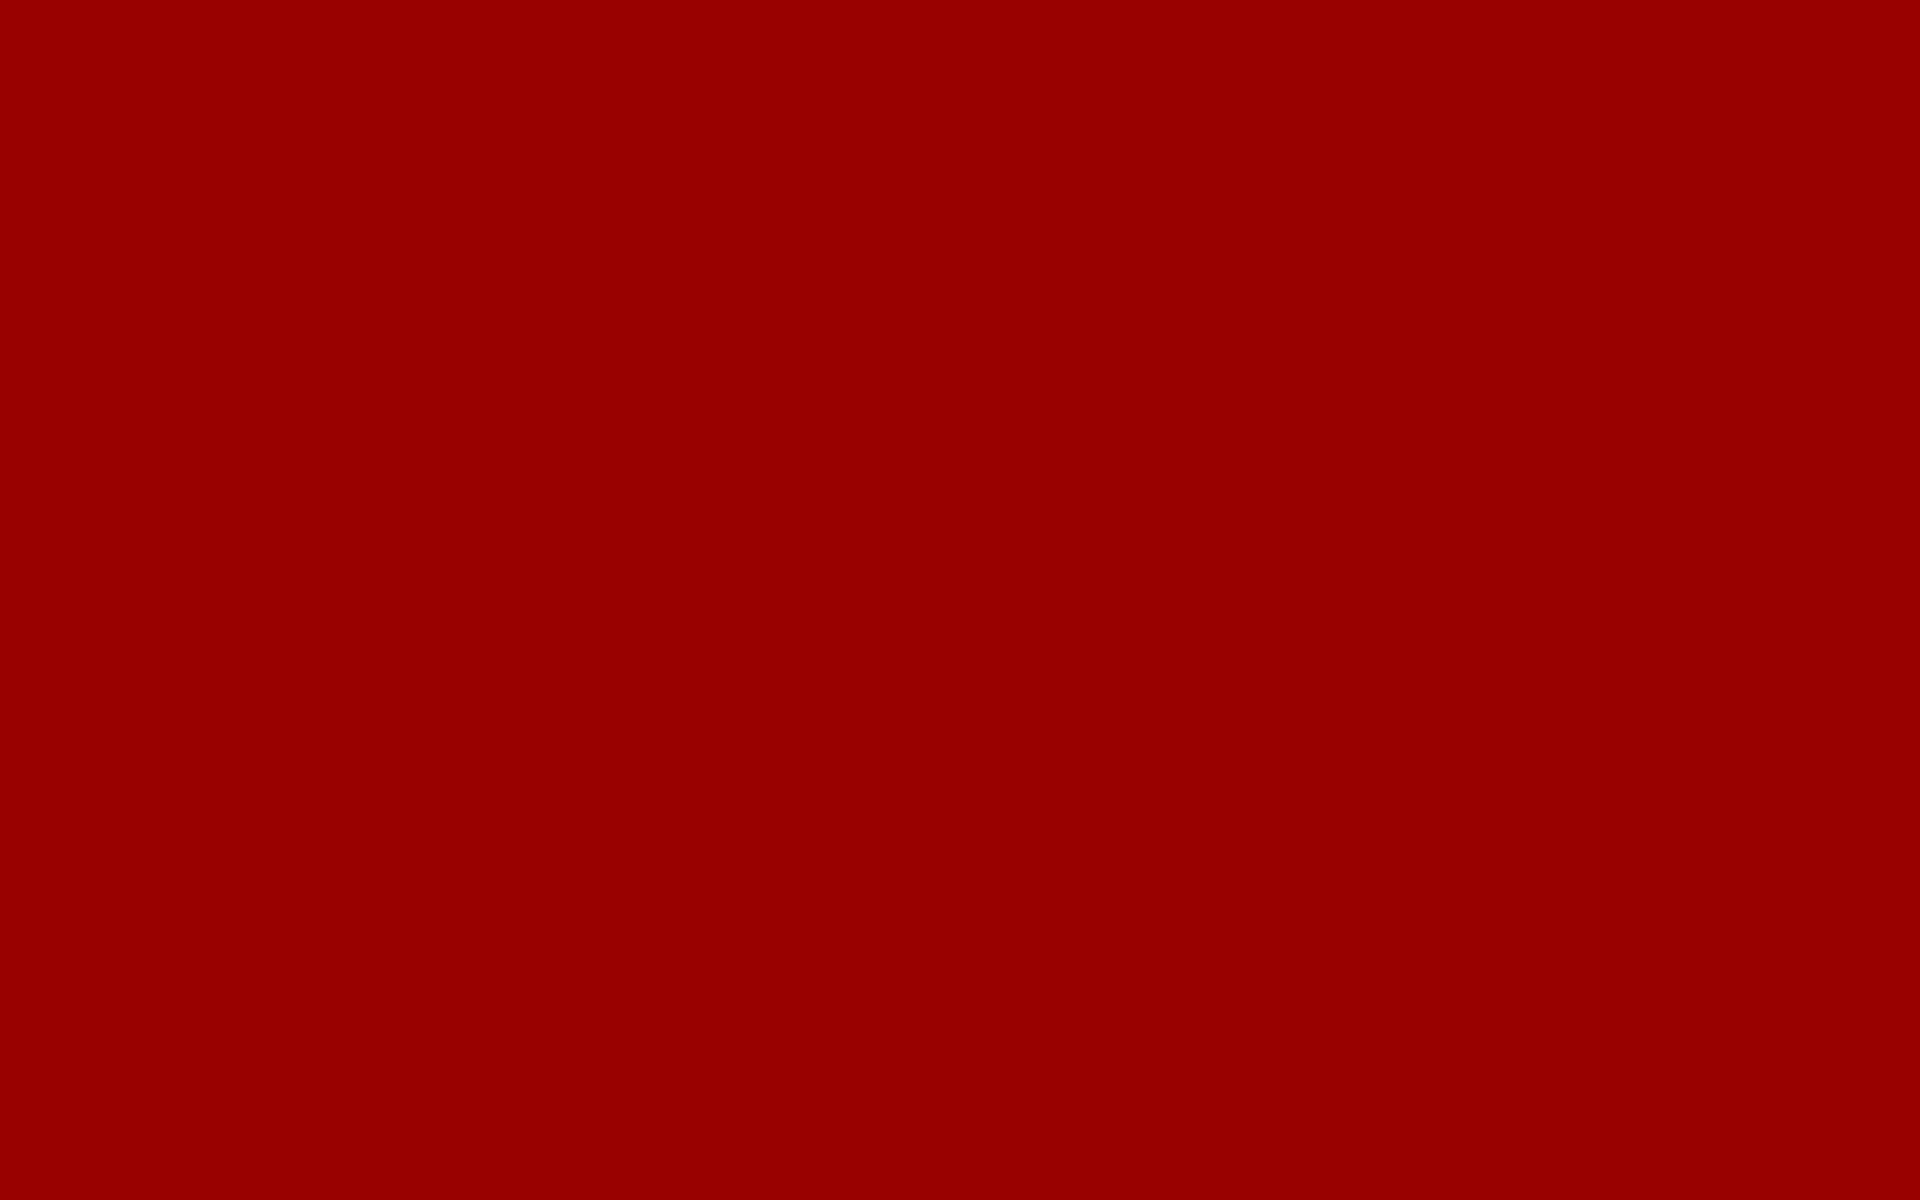 1920x1200 OU Crimson Red Solid Color Background